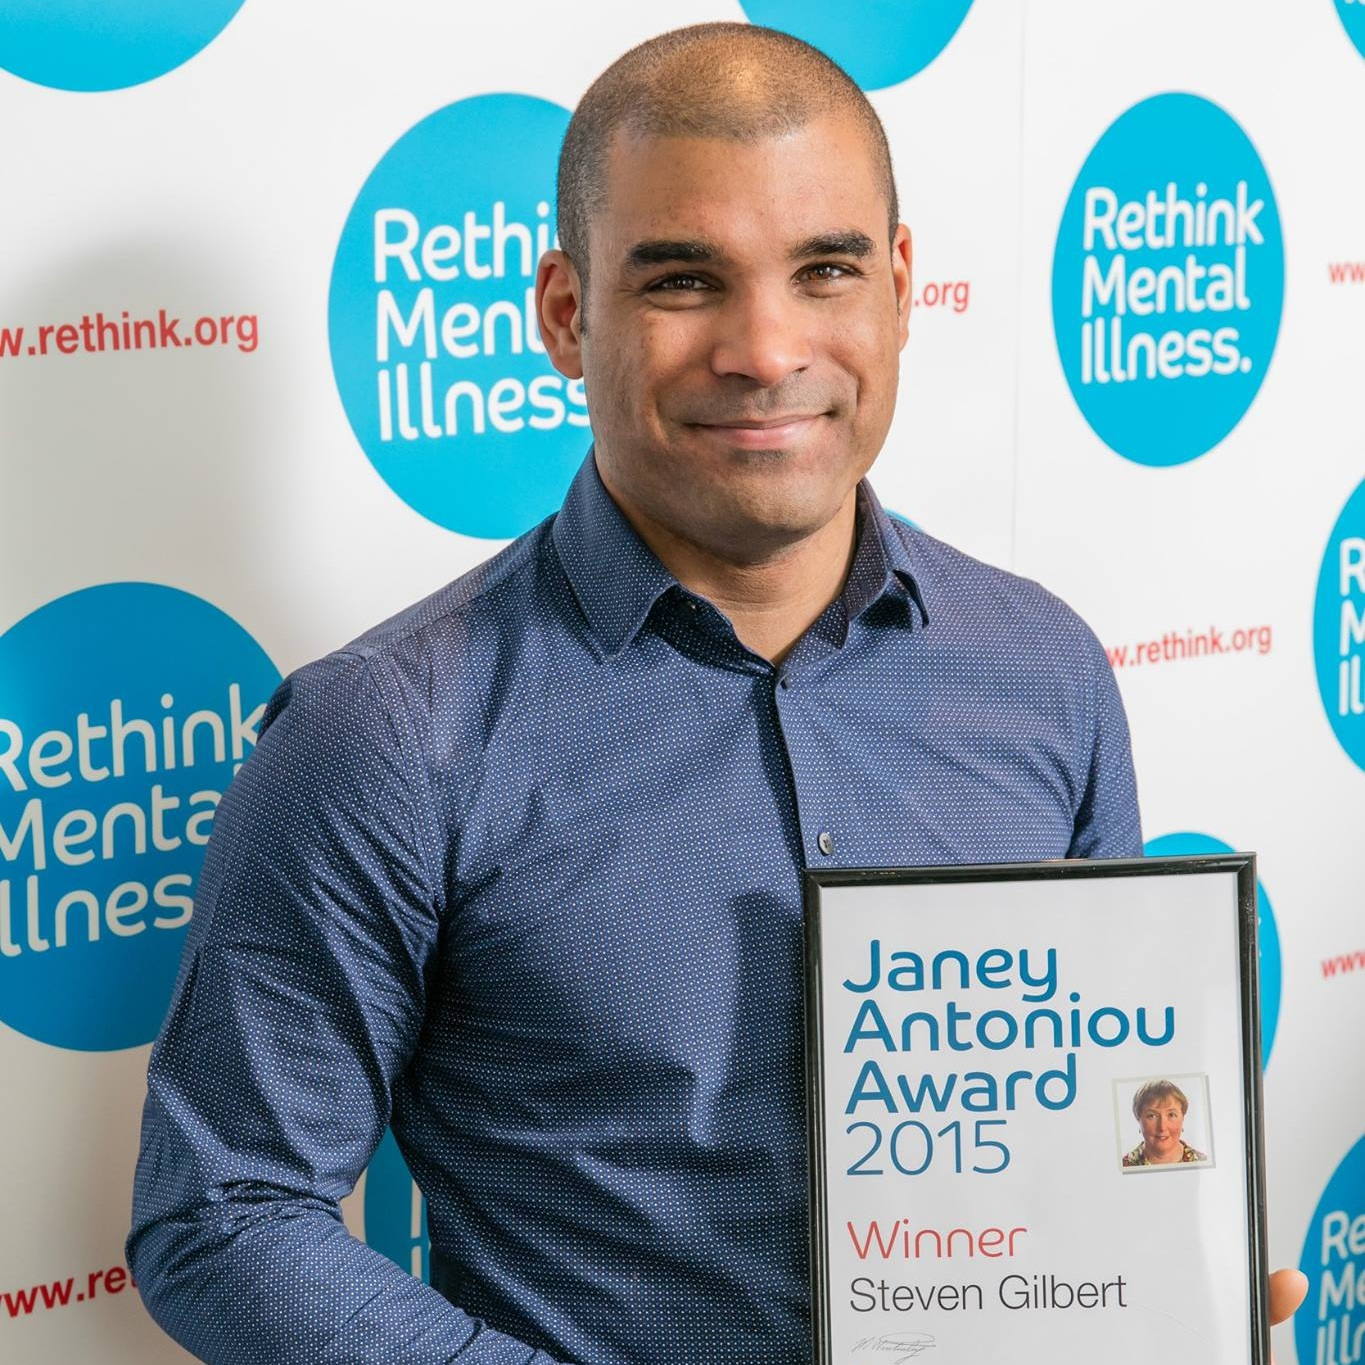 Janey Antoniou Award 2015 from Rethink Mental Illness - The award recognises people who have worked to raise awareness of mental illness, and to improve how people with mental illness are treated.